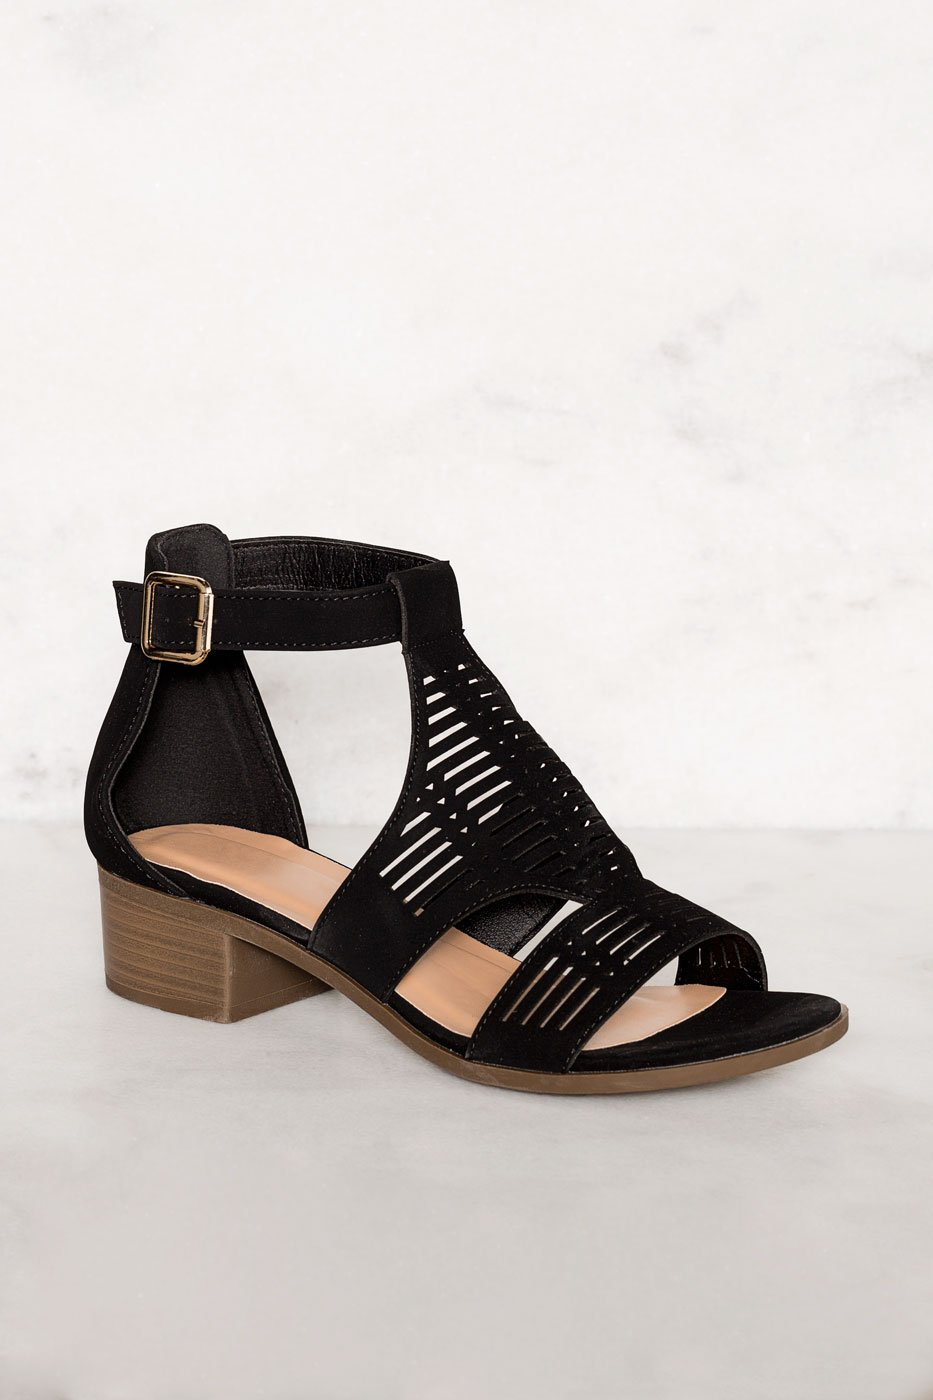 3d2f5b36345 ... Shoes - Jilian Low Block Heel Sandals - Black ...